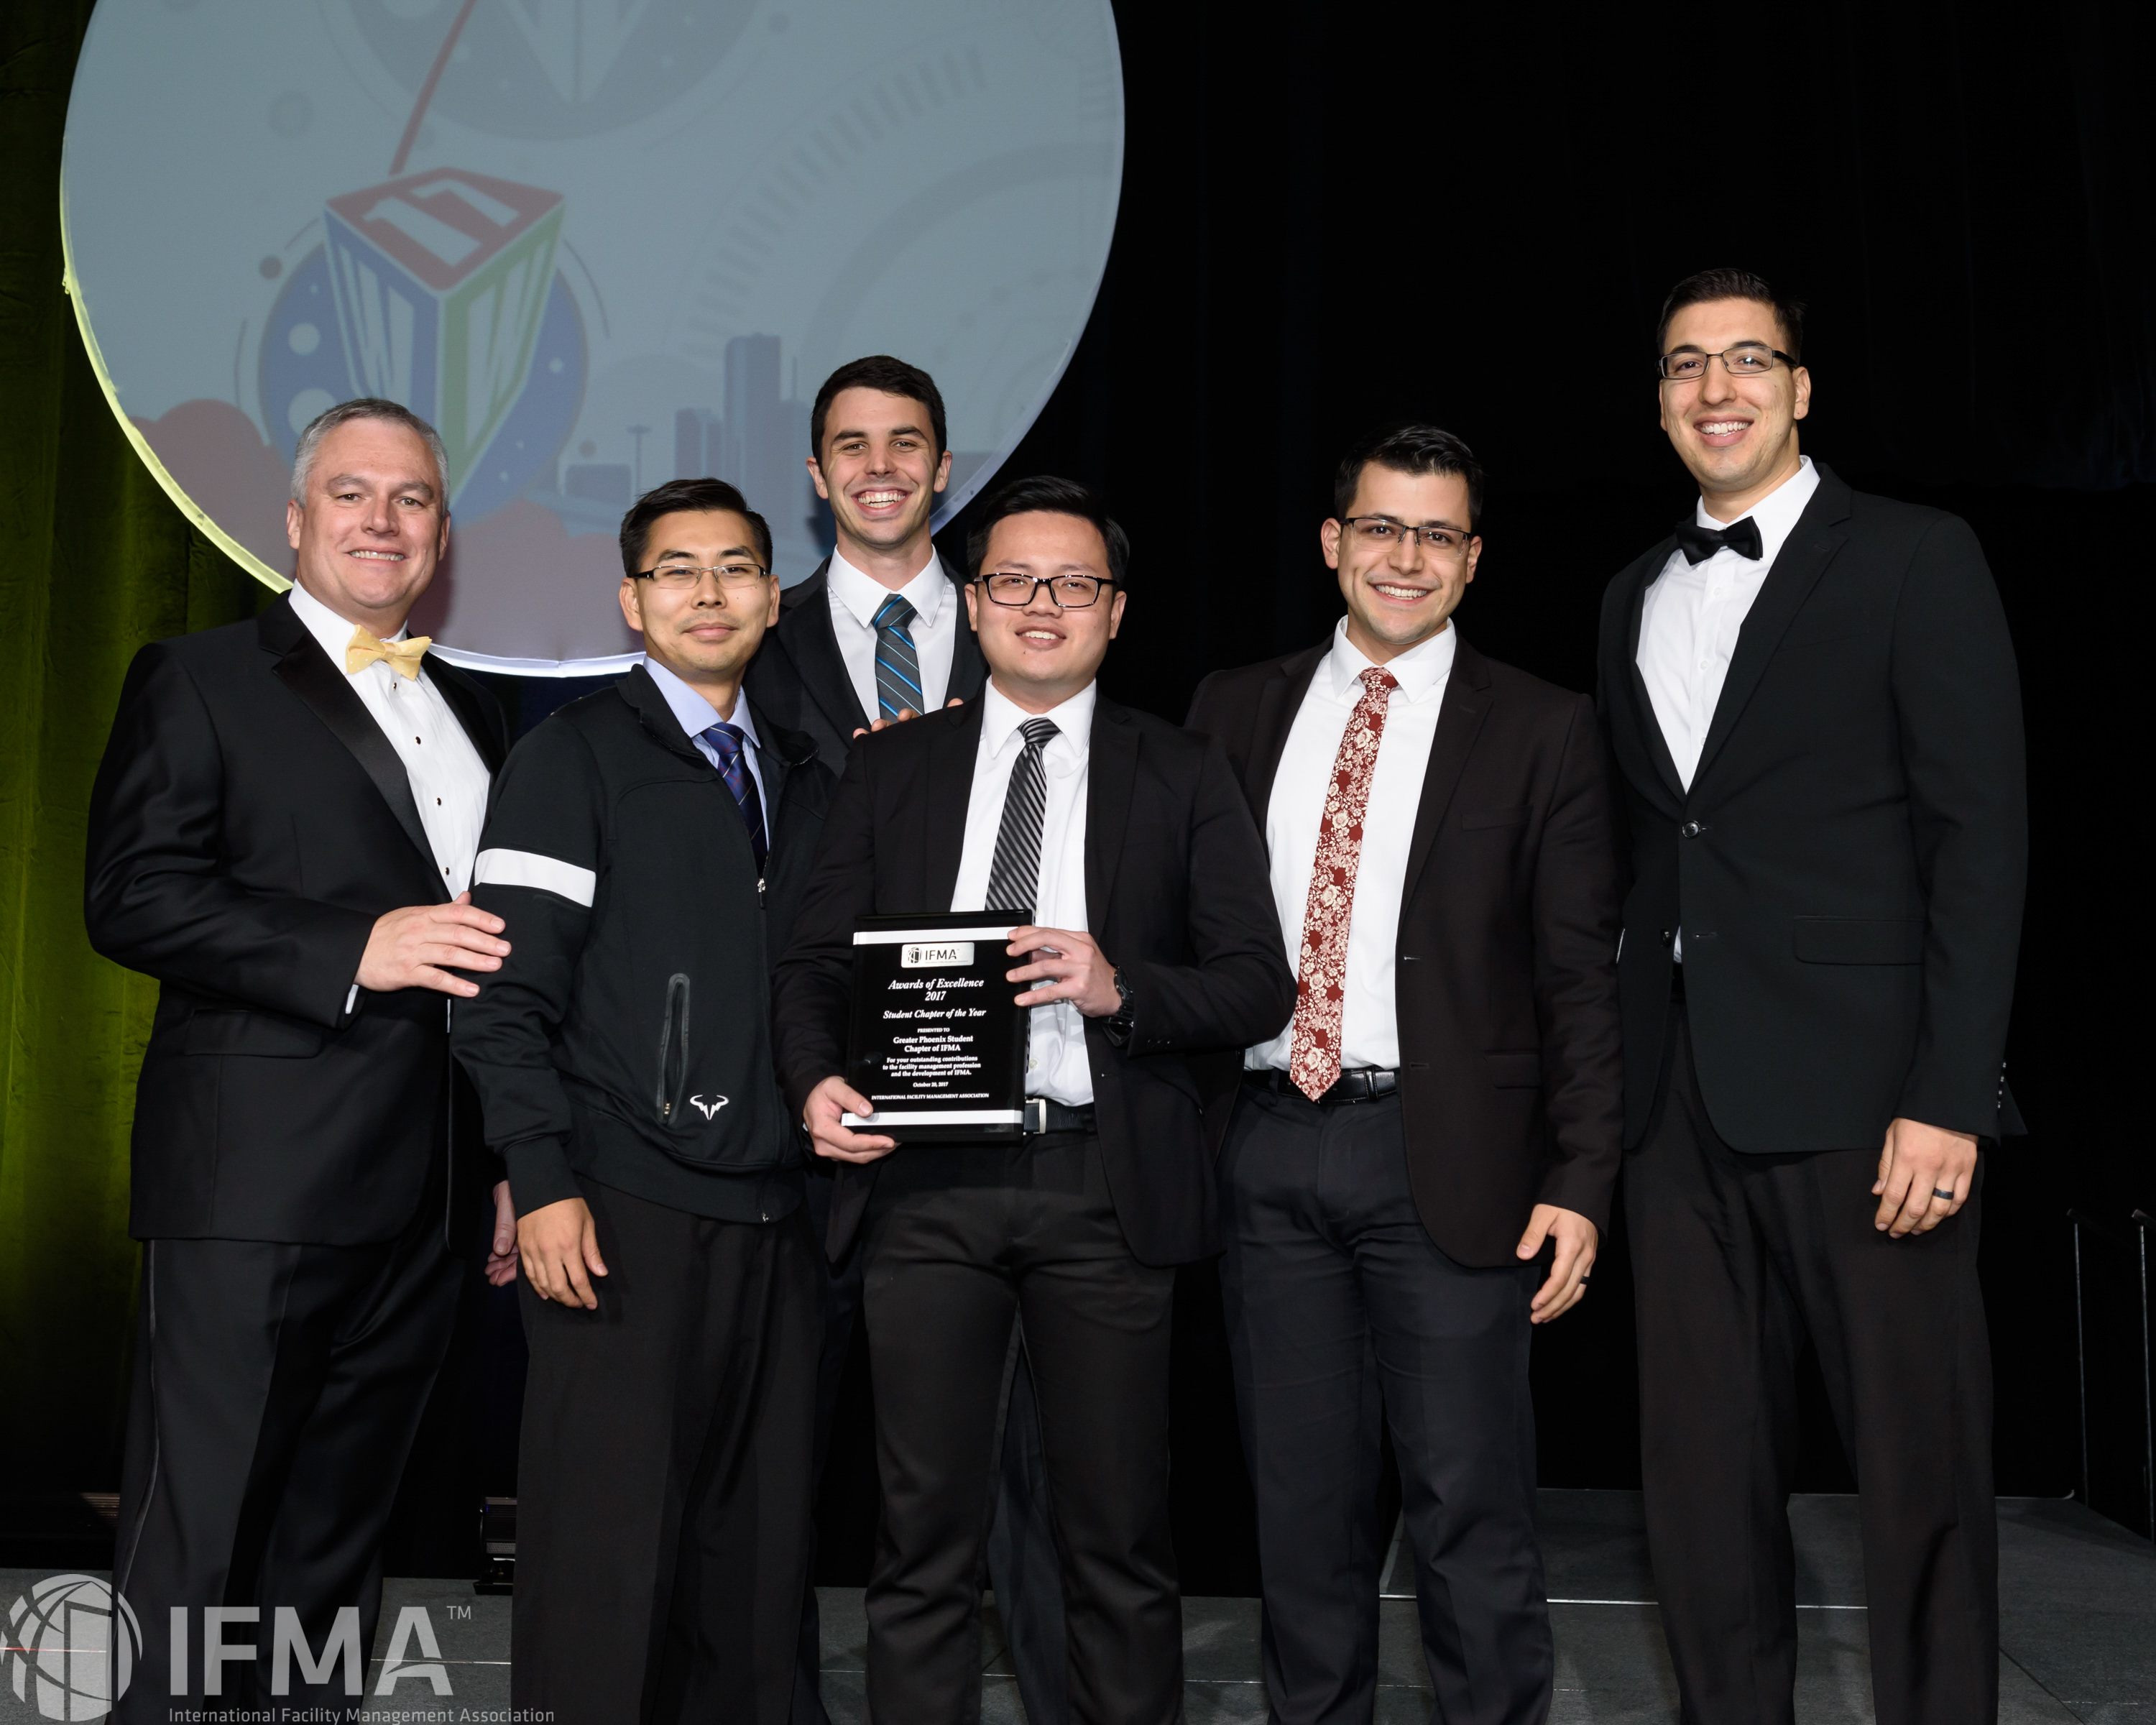 Greater Phoenix Student Chapter of IFMA receives Student Chapter of the Year Award